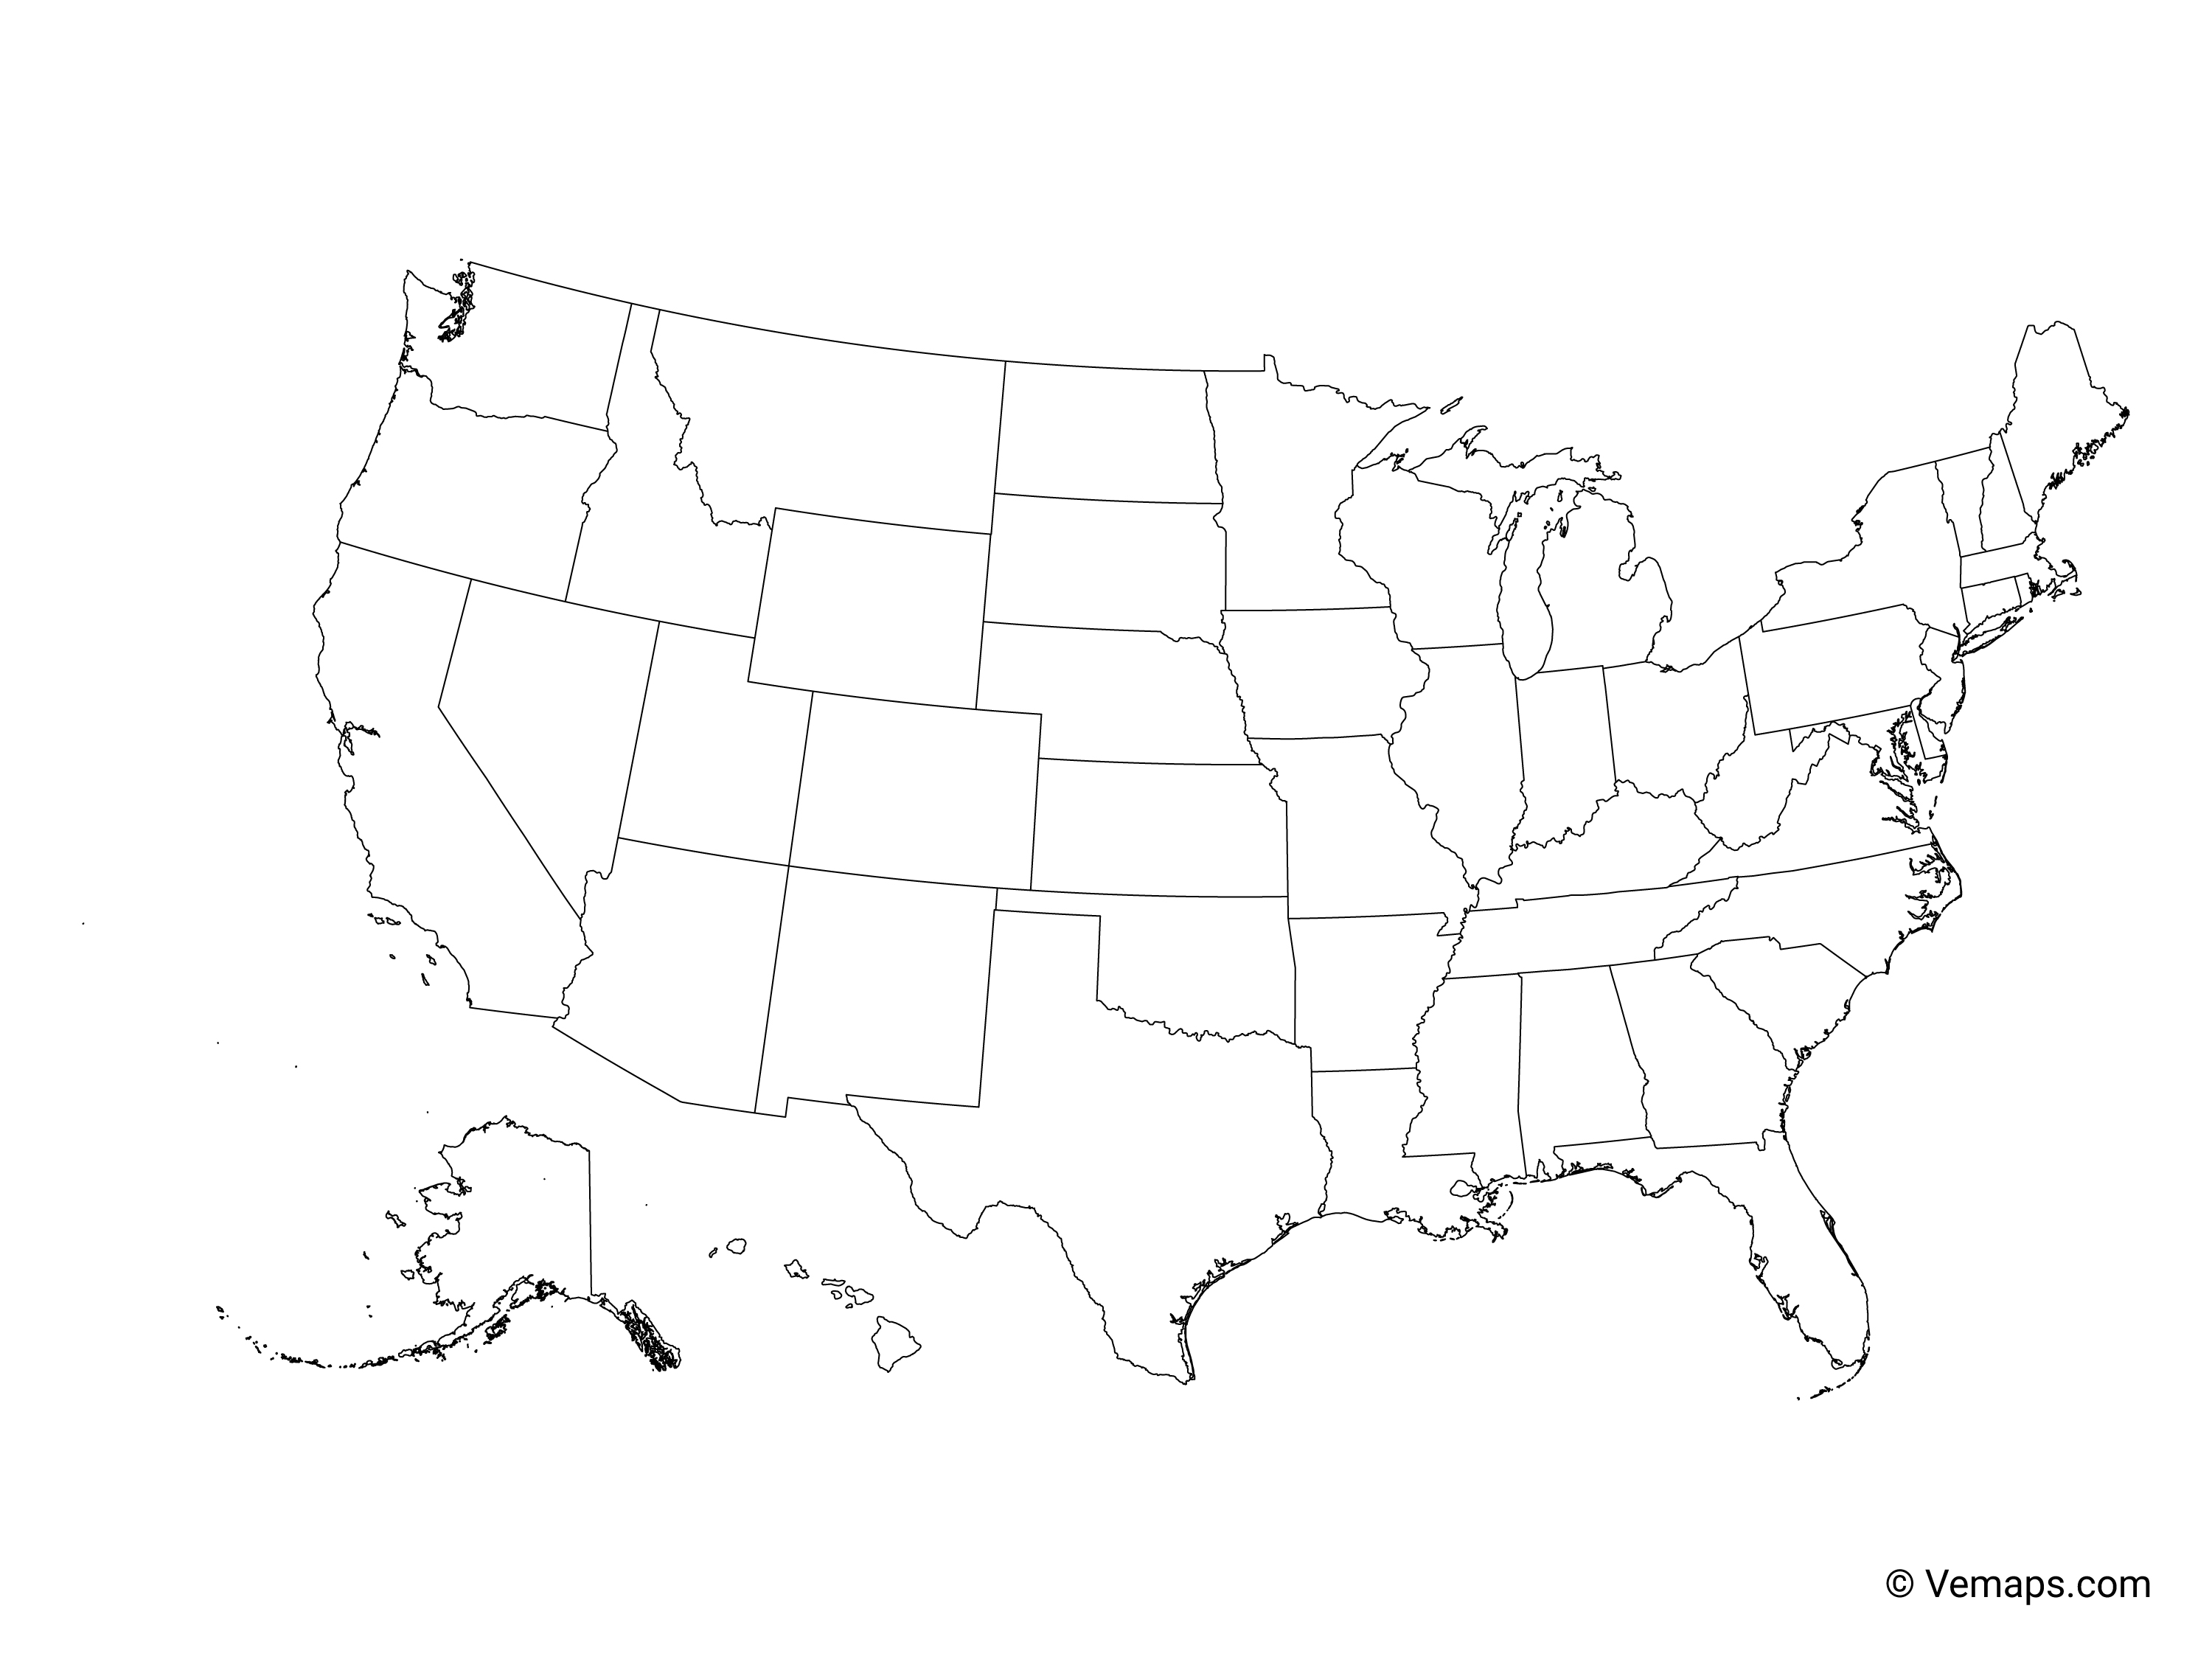 Outline Map of the United States with States | Free Vector Maps